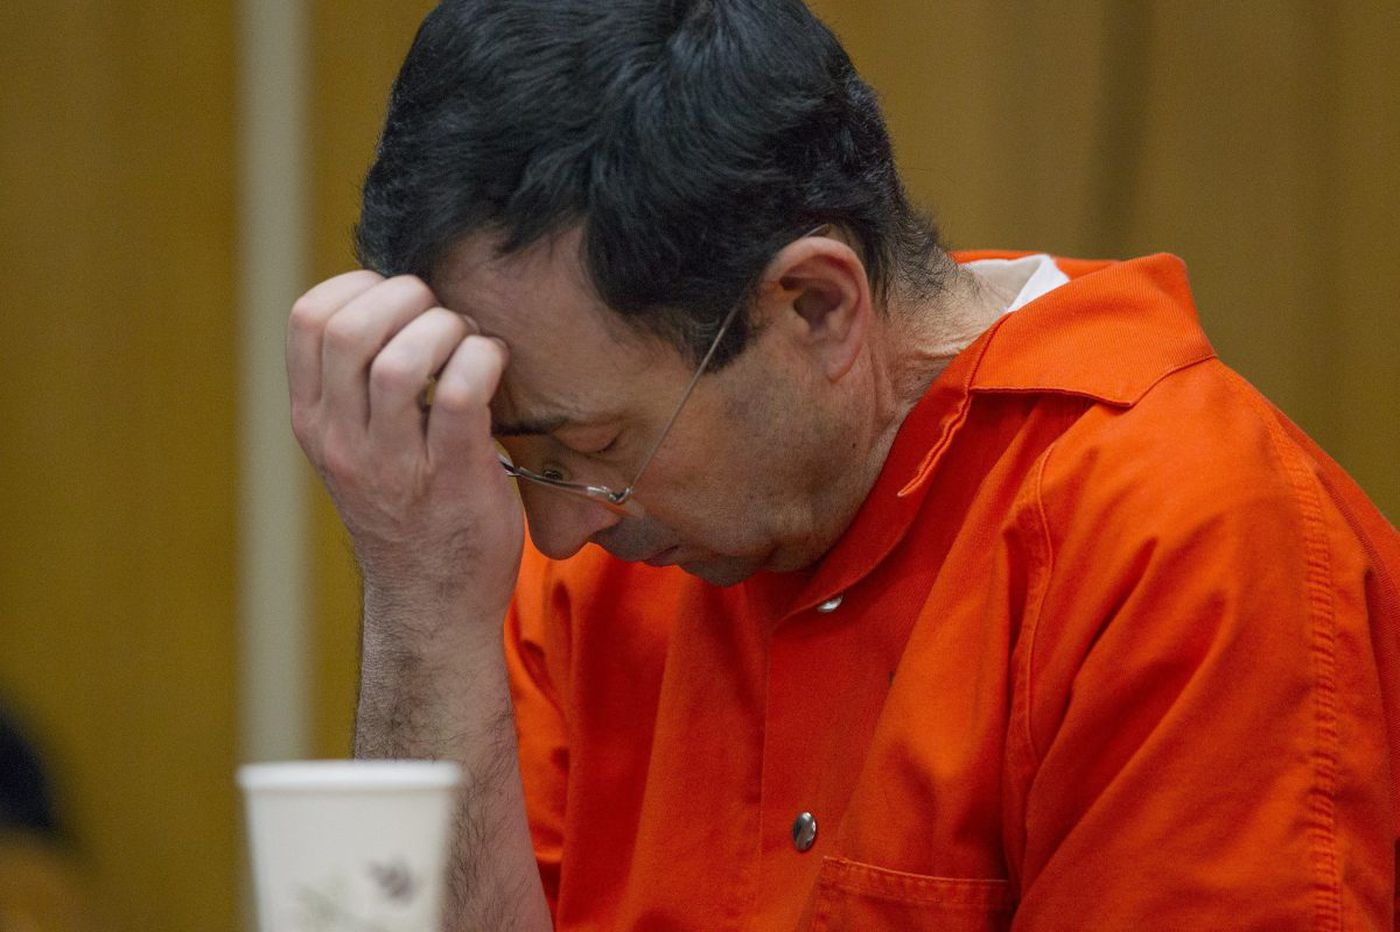 Police investigated Larry Nassar for abuse 13 years ago. Here's how he got away